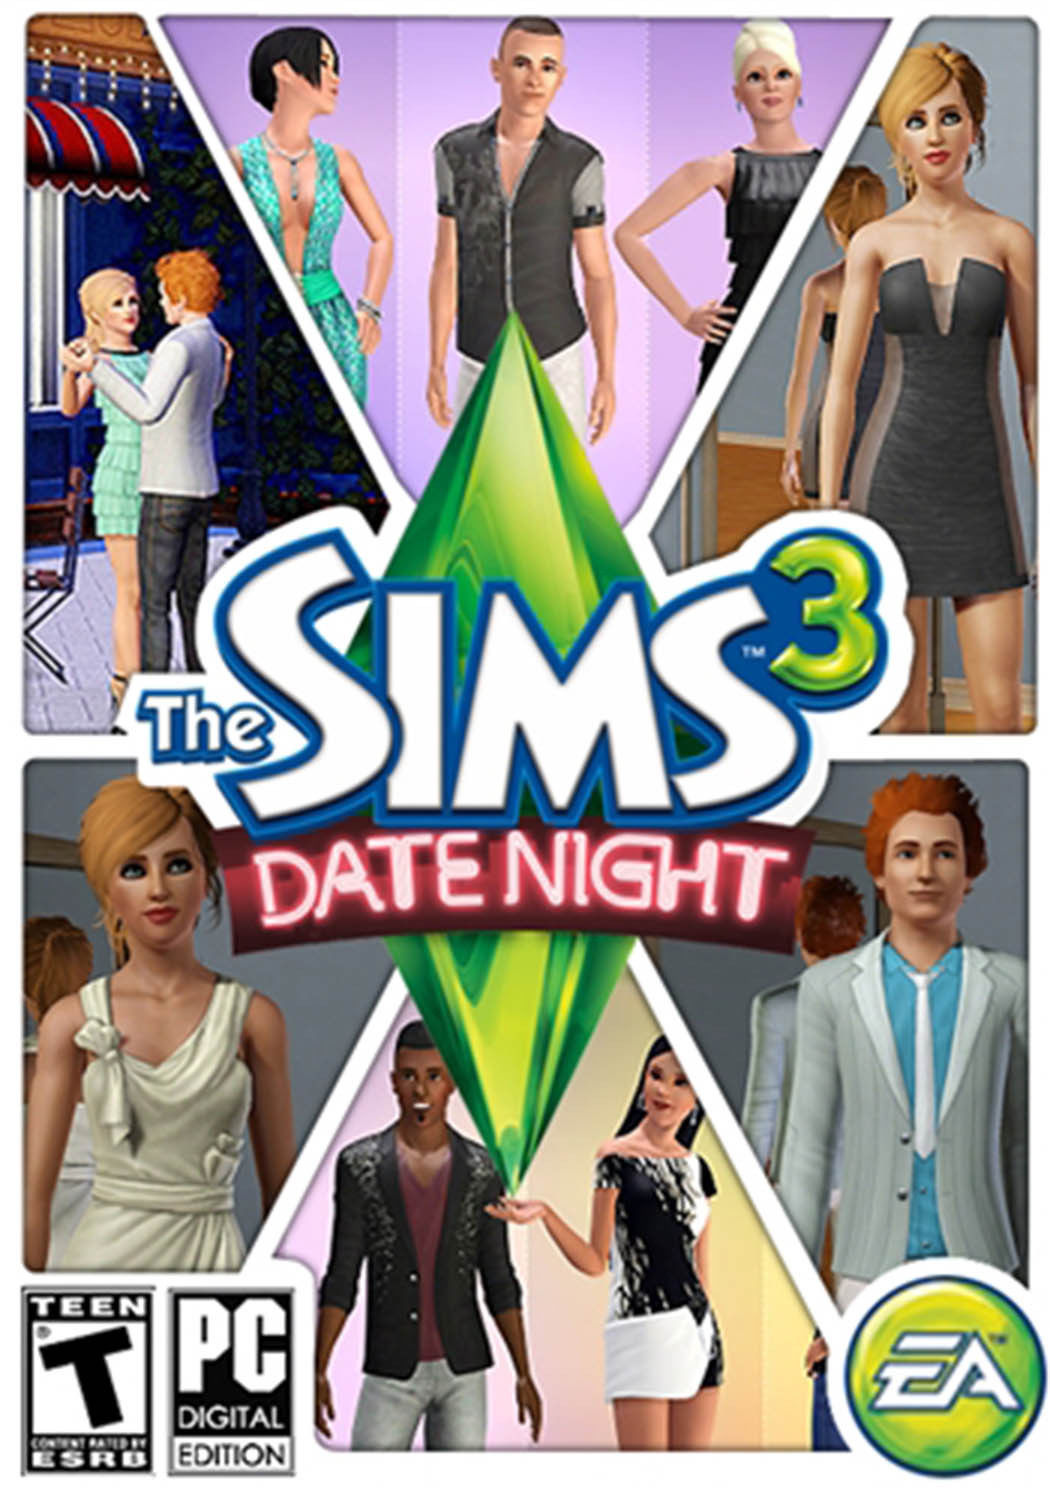 THE SIMS 3 DATE NIGHT EXPANSION PACK